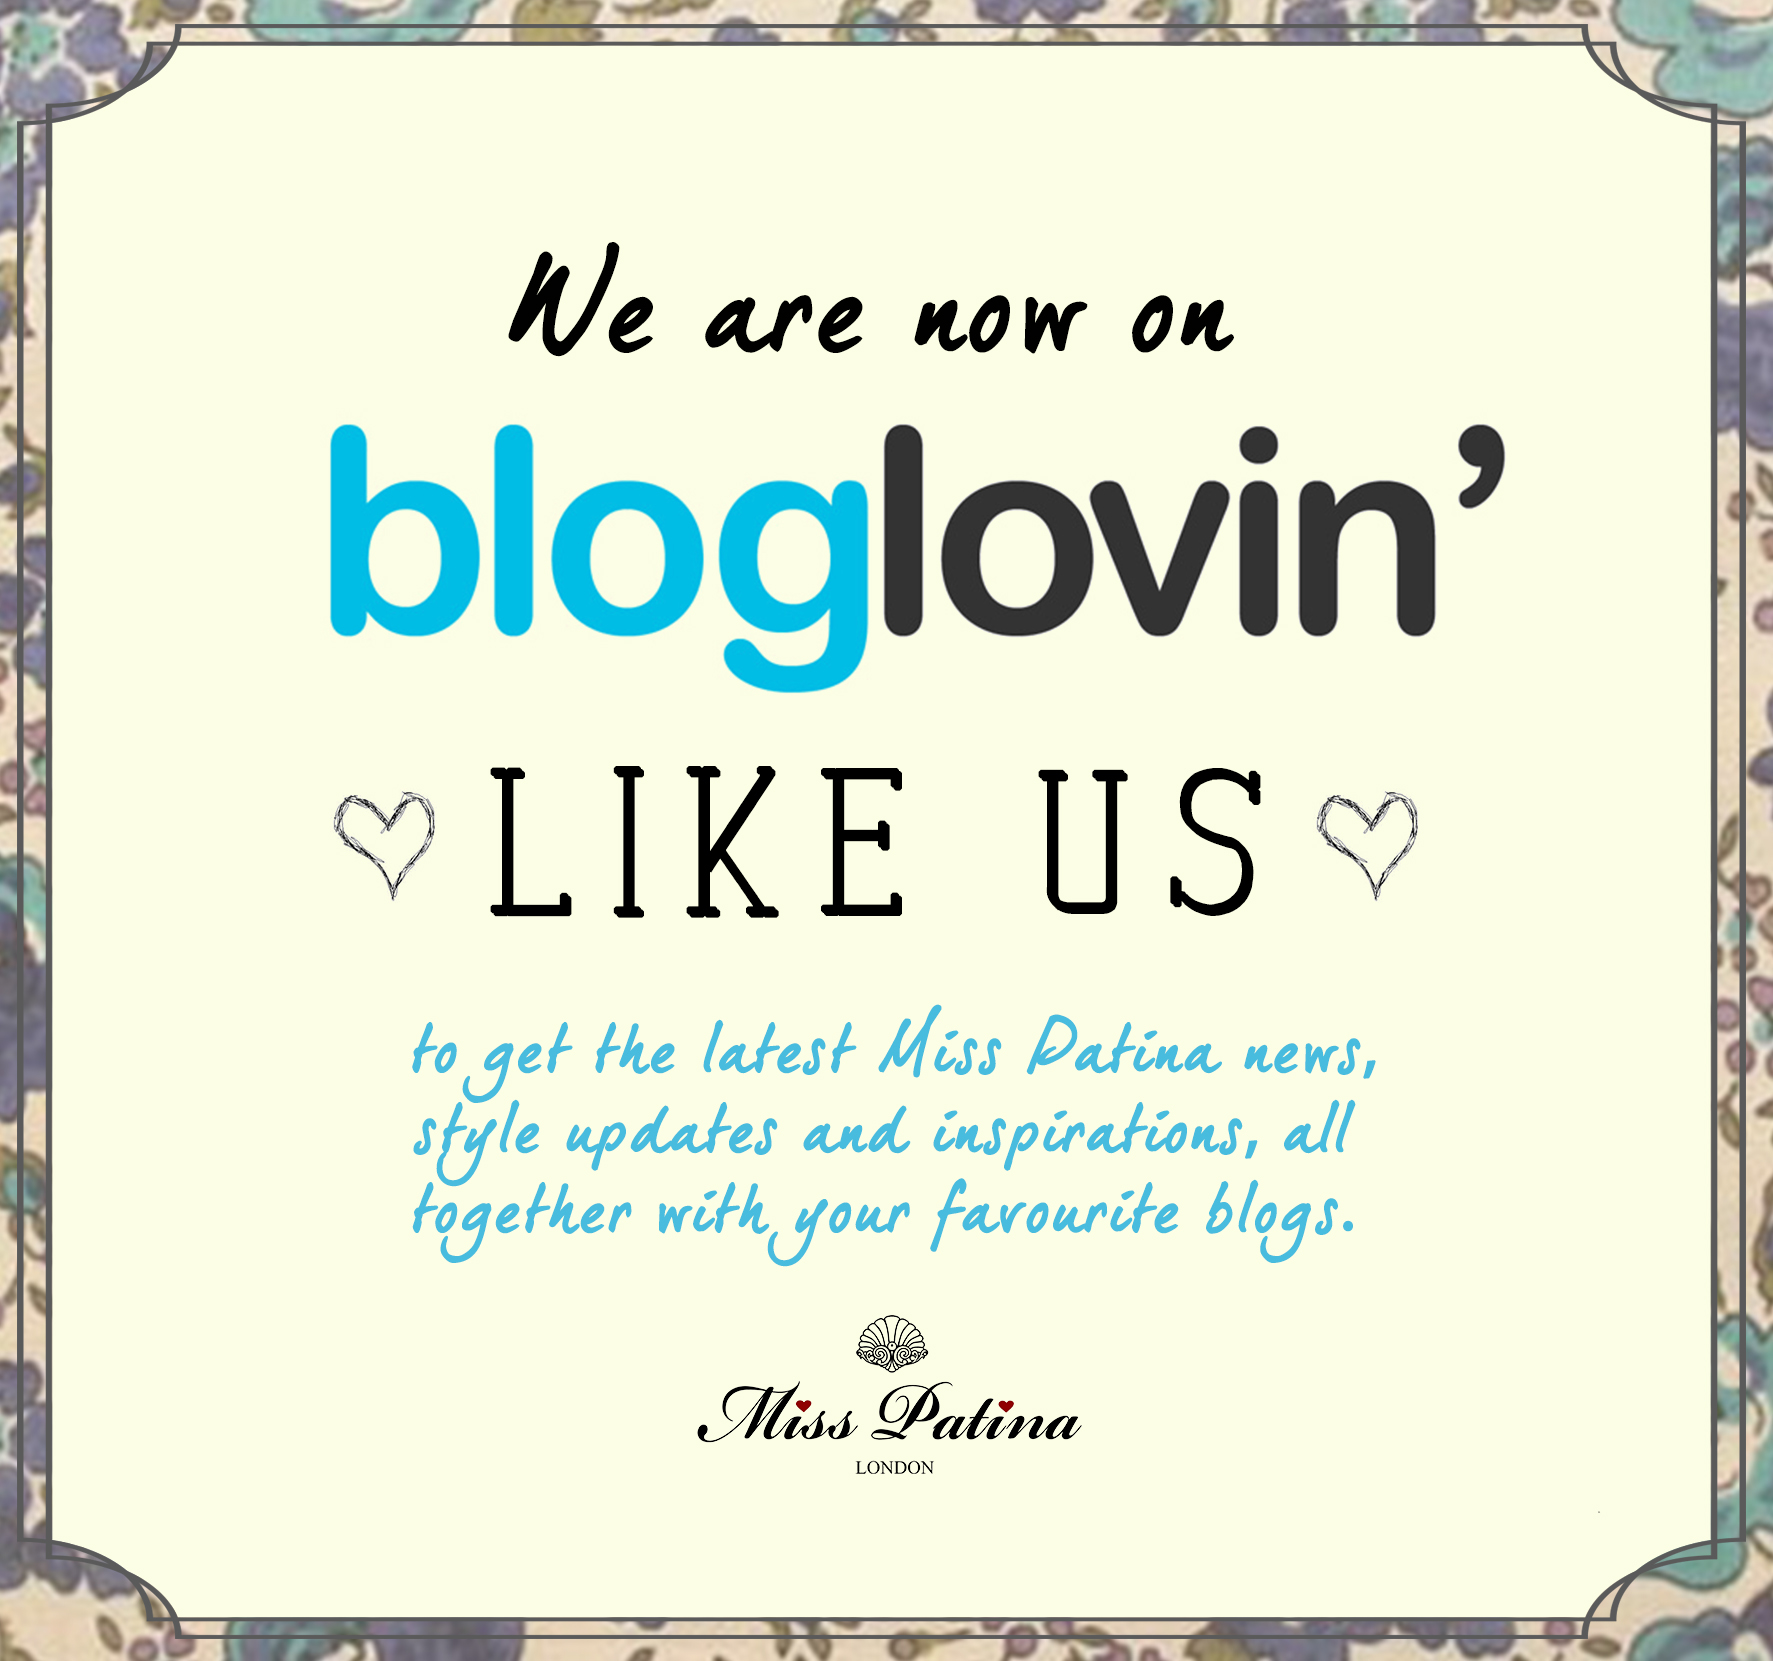 We are now on Bloglovin!